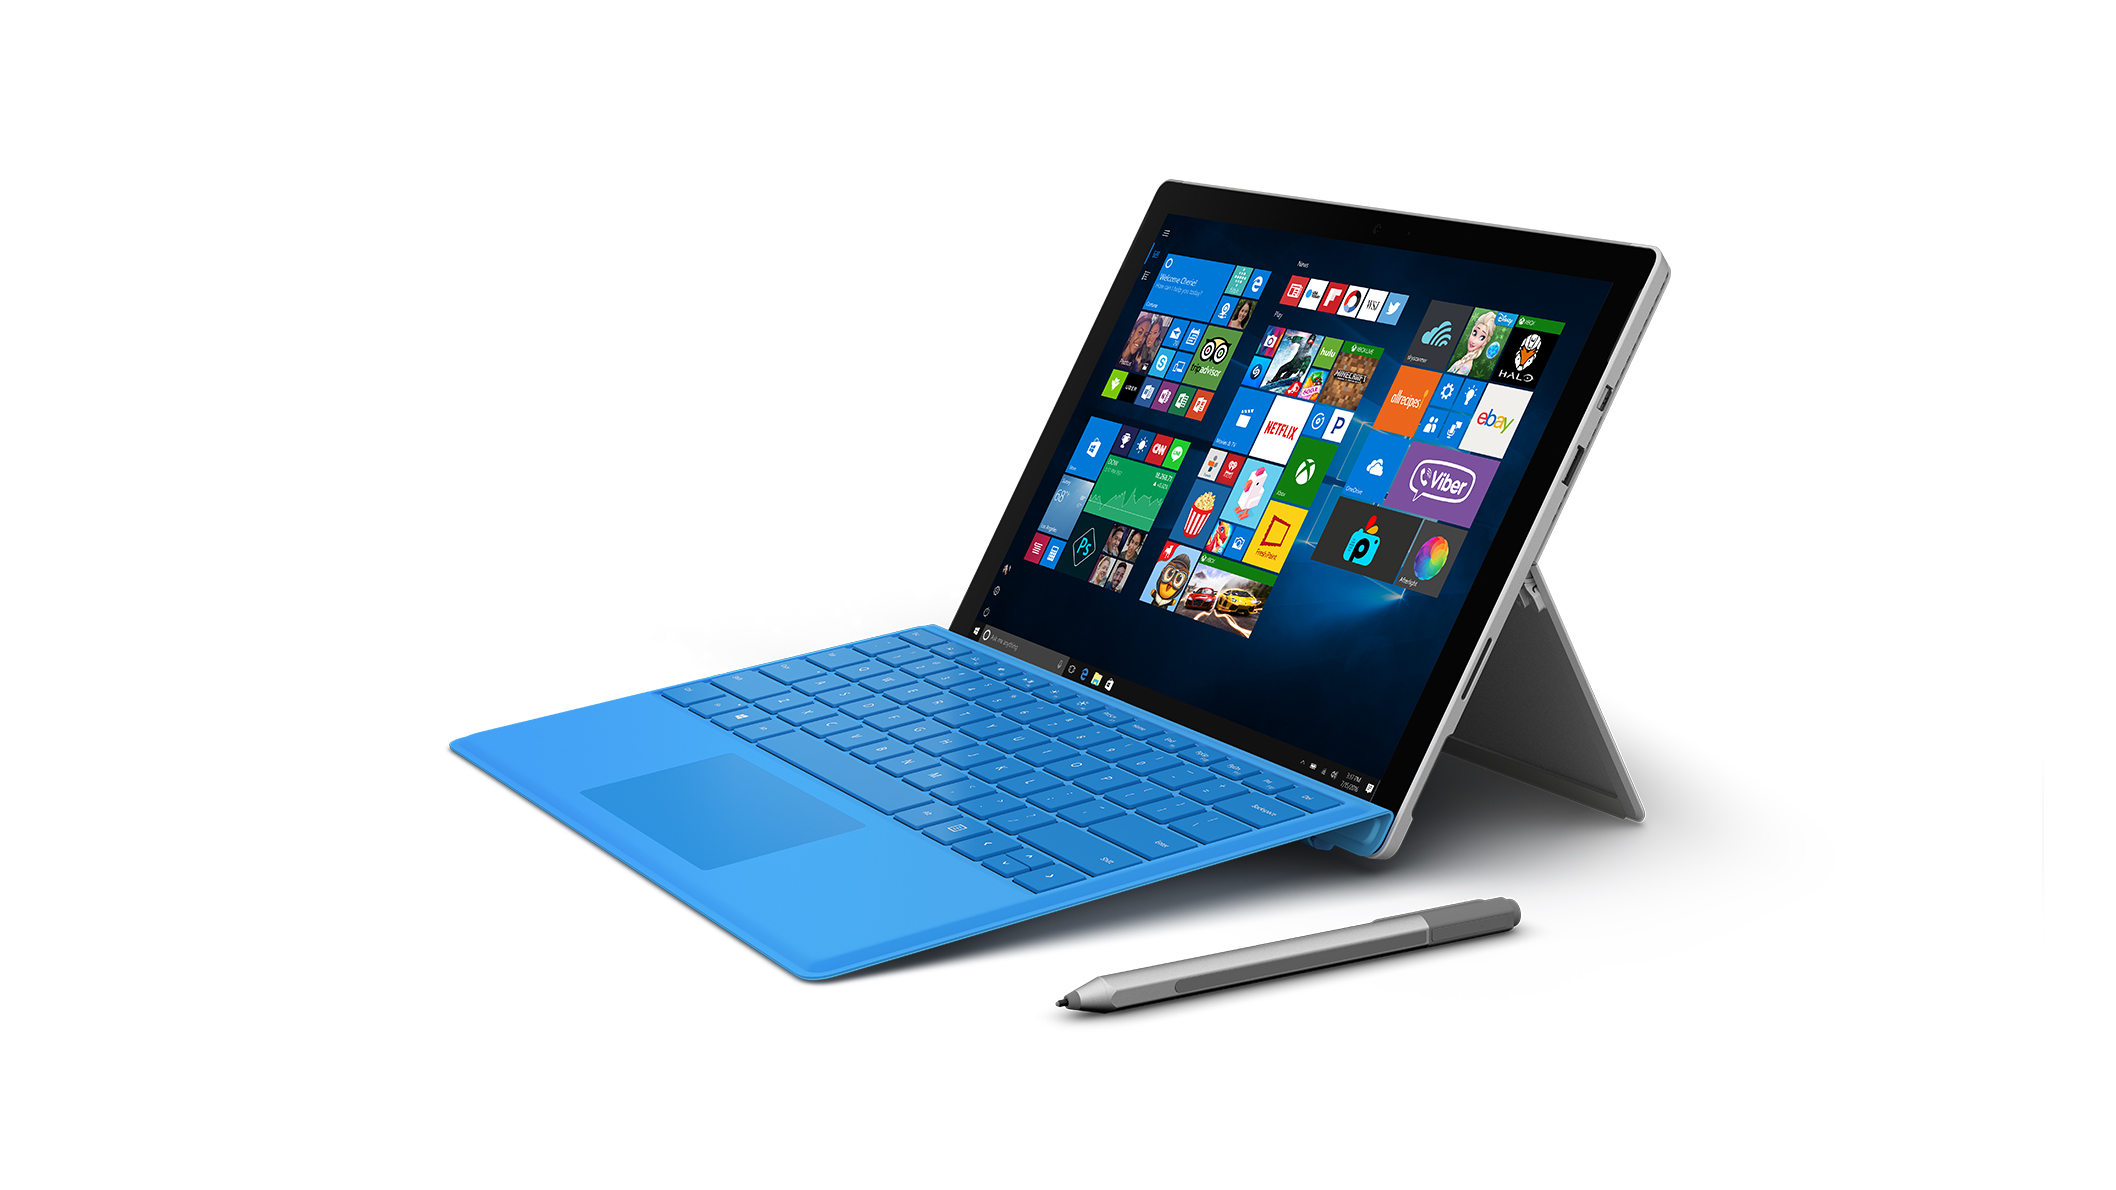 a-microsoft-surface-pro-3-promotion-codes-2015-can-reduce-lots-of-price-for-you